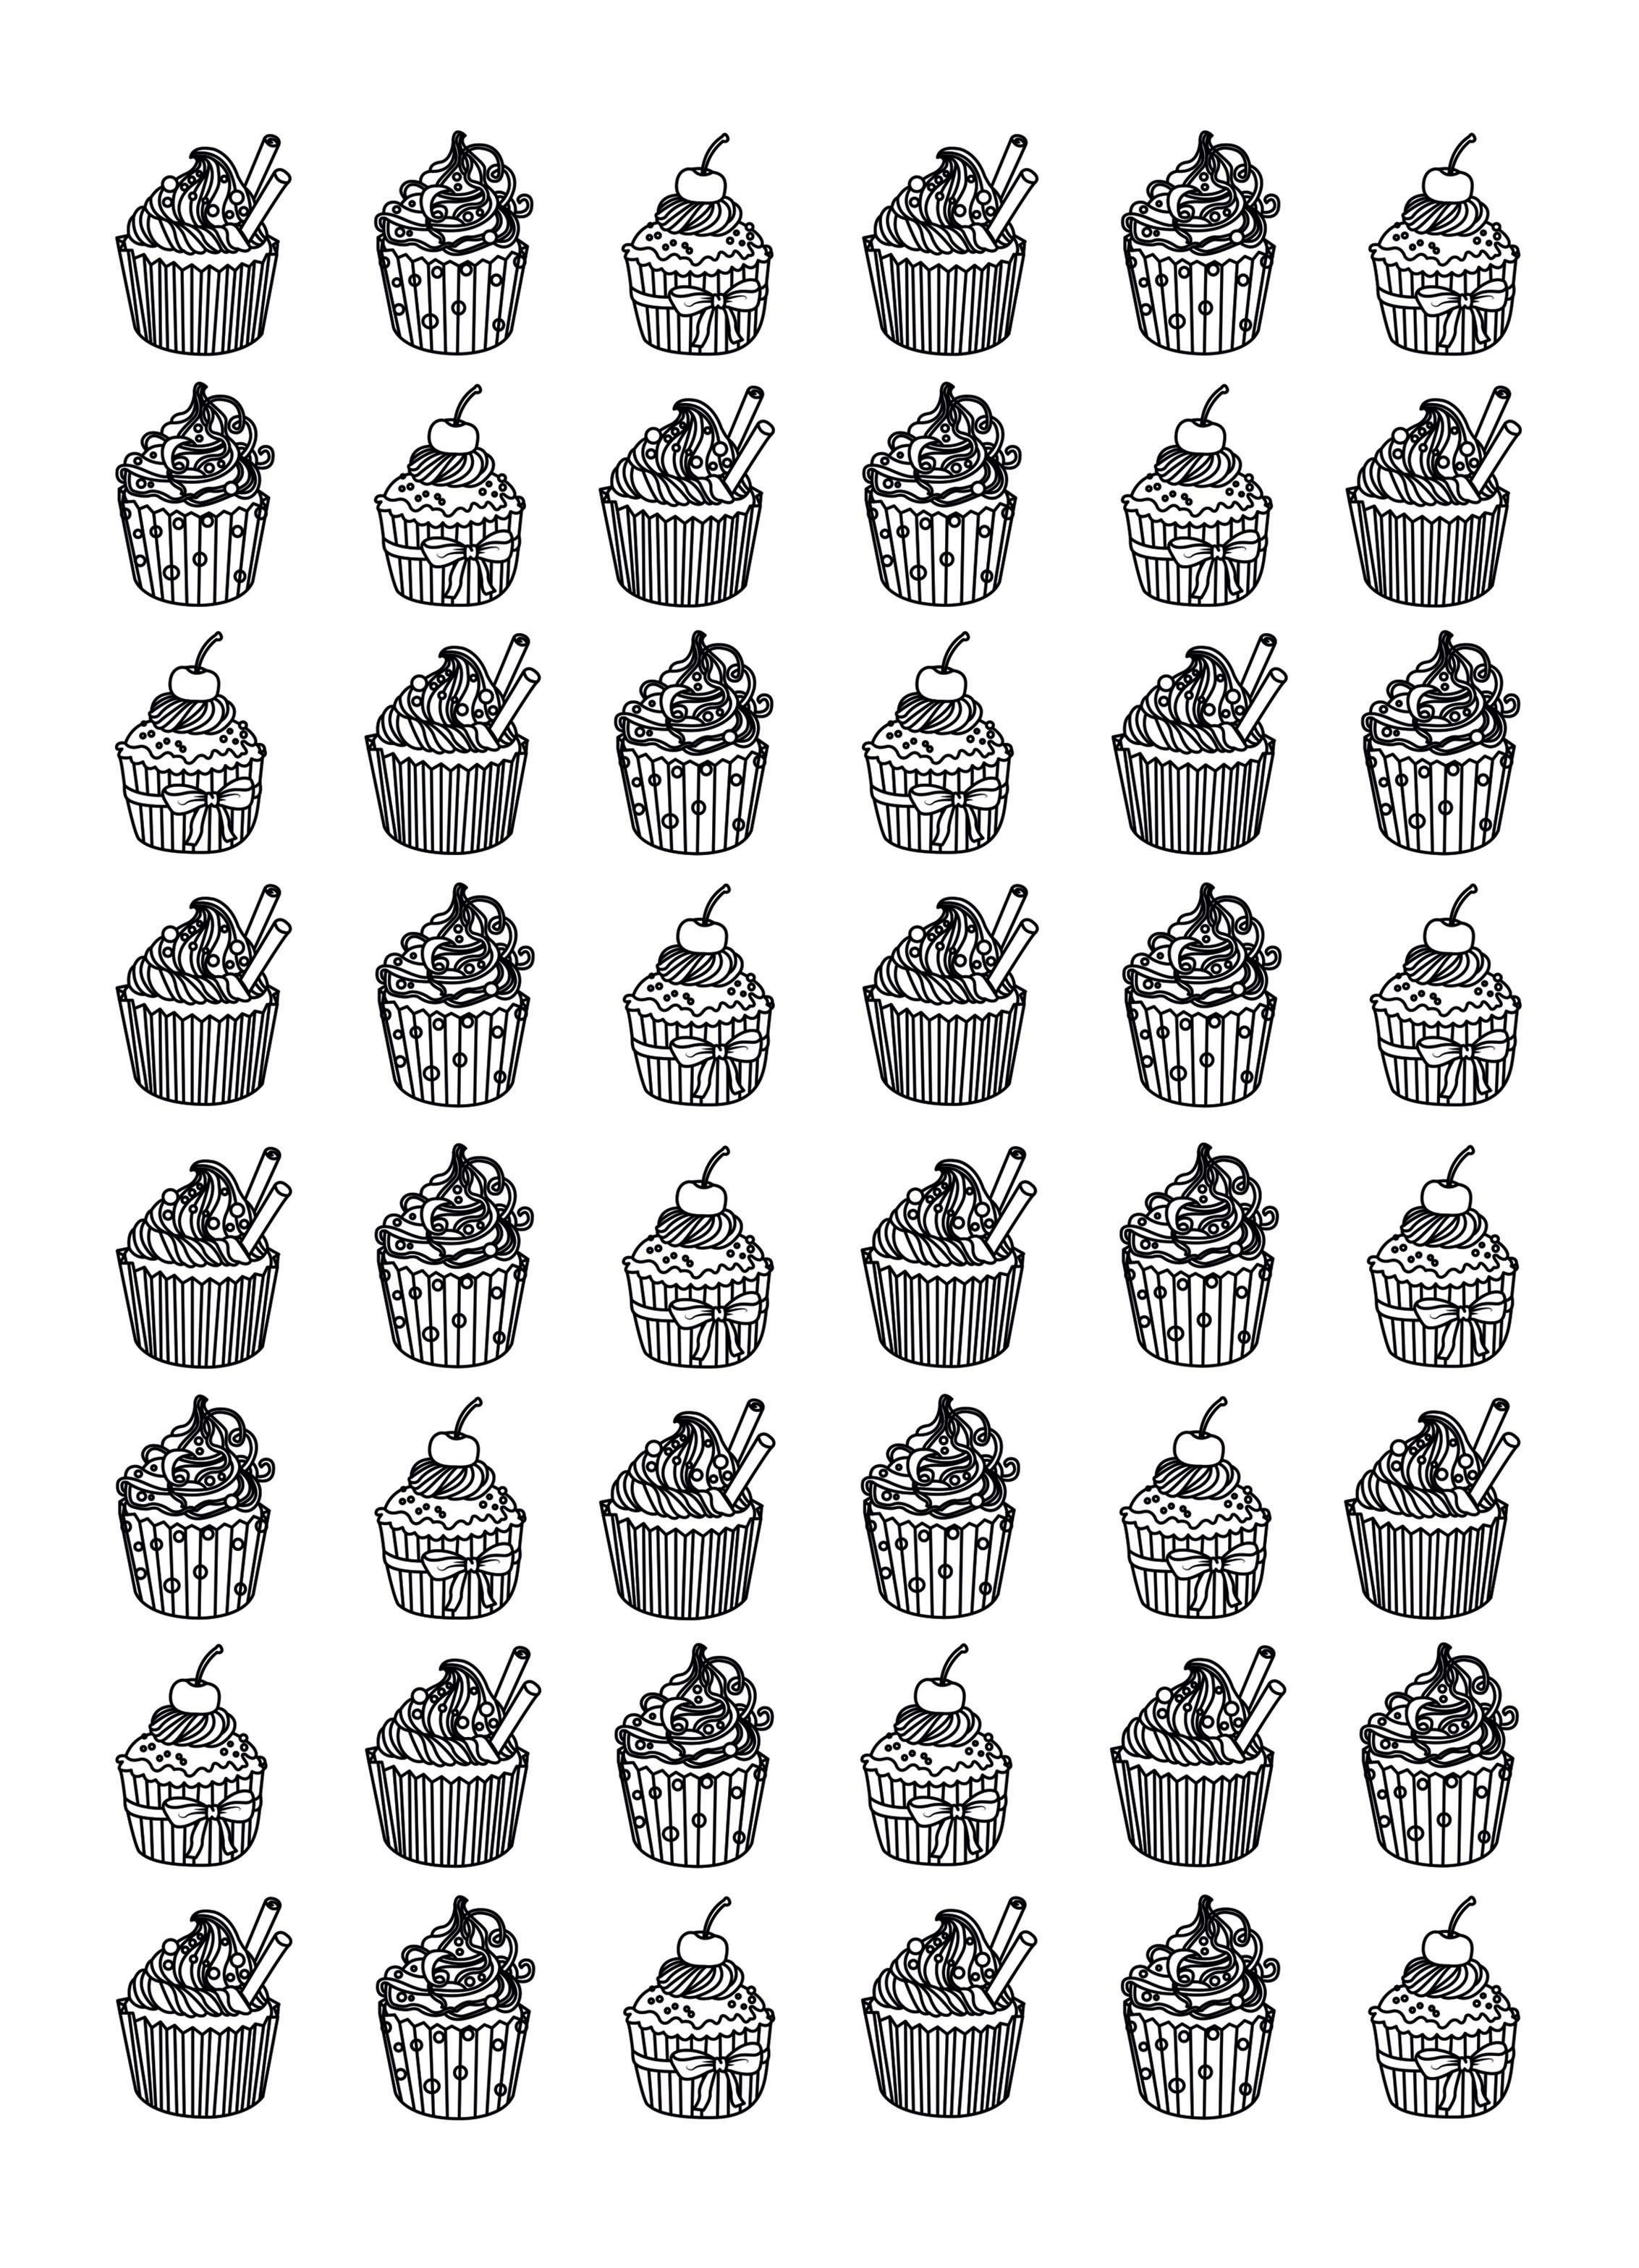 Cupcakes Hard Celine Cupcakes And Cakes Coloring Pages For